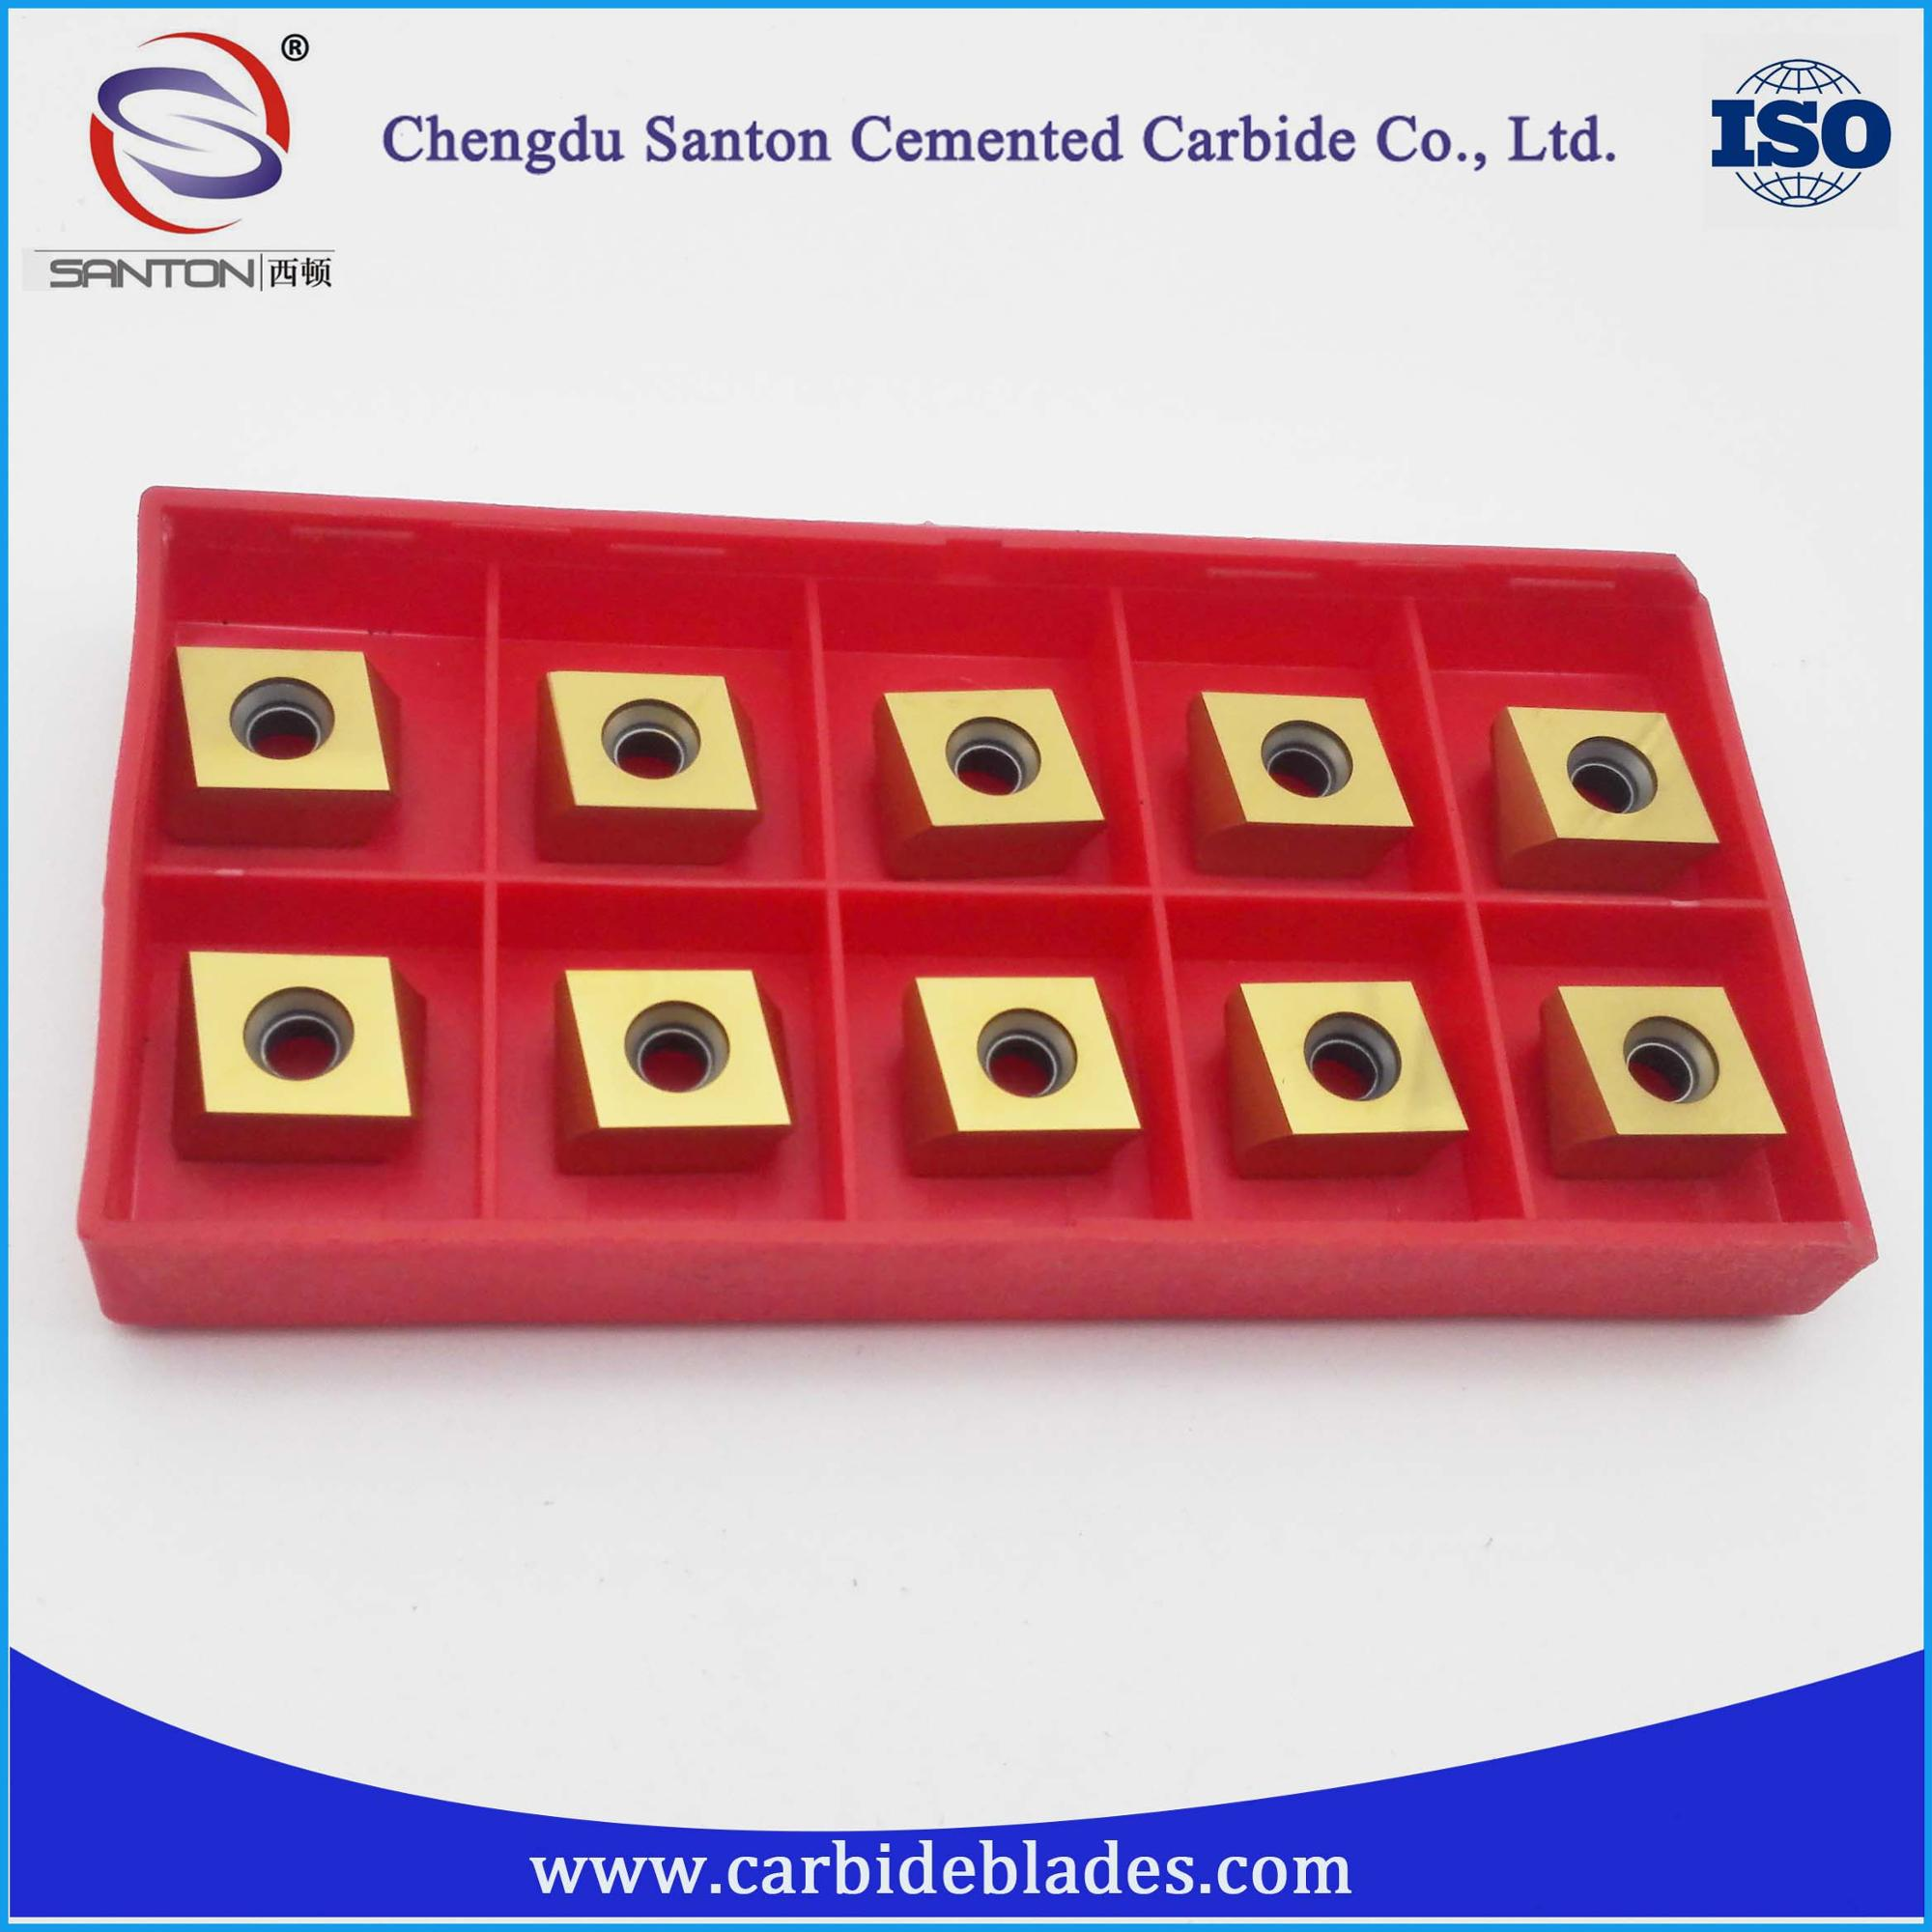 carbide crankshaft turning tool inserts